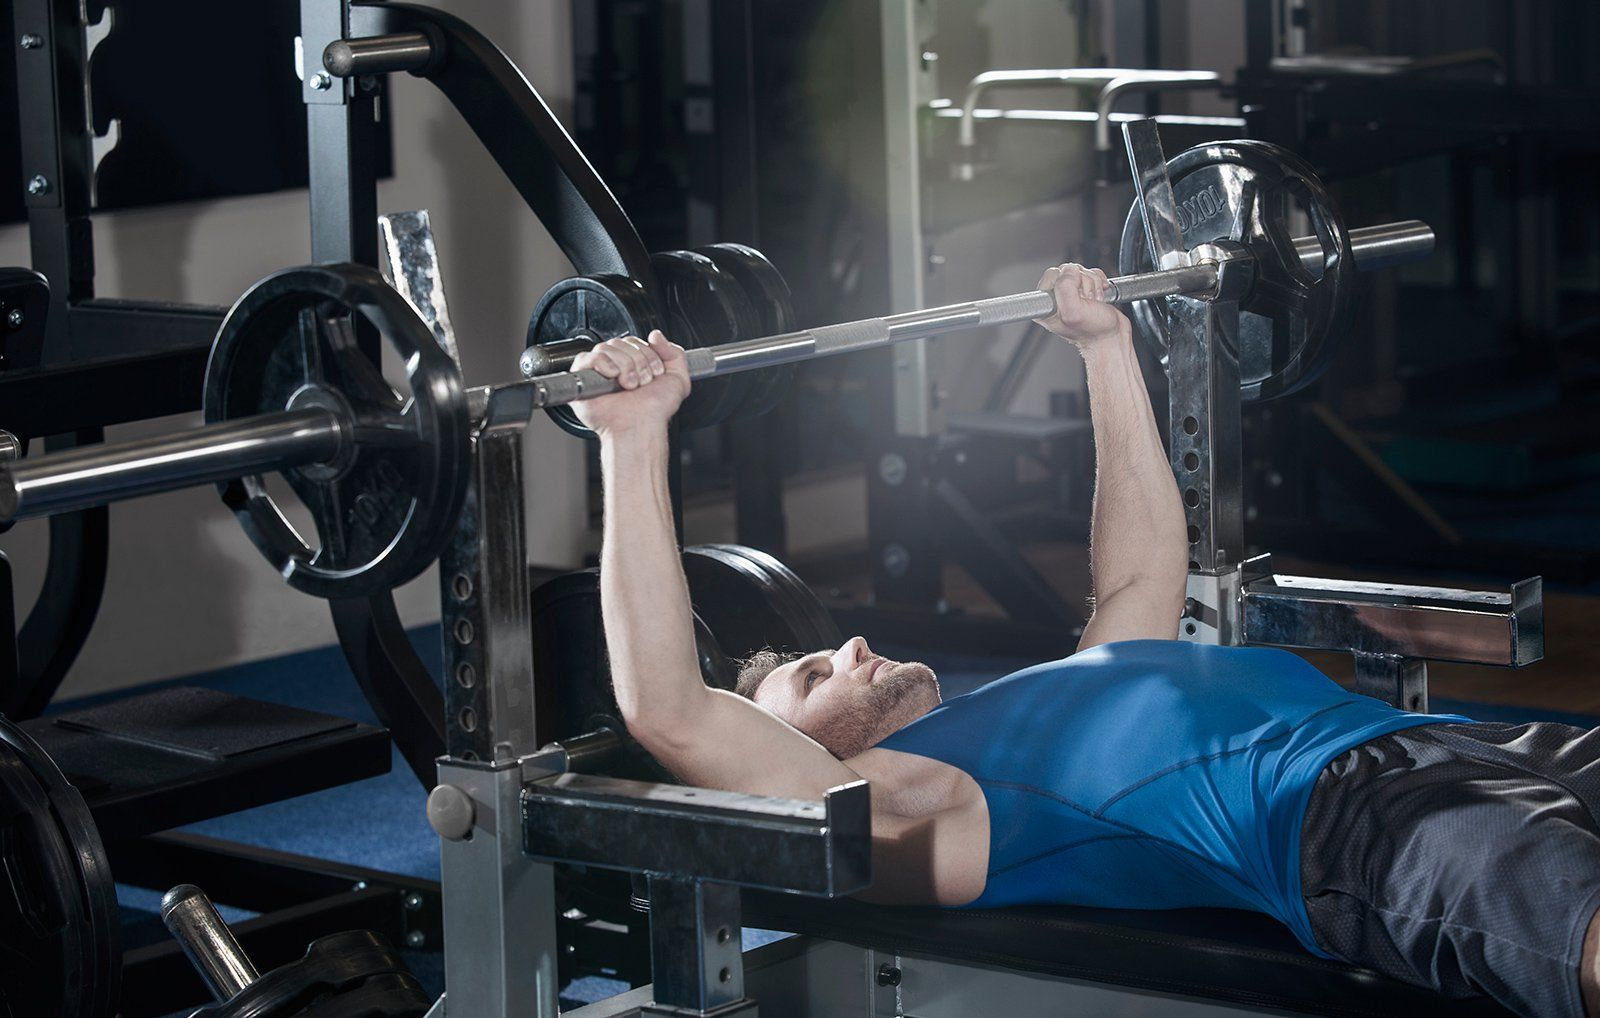 5 Tiny Tweaks That Will Help You Bench Press More Weight